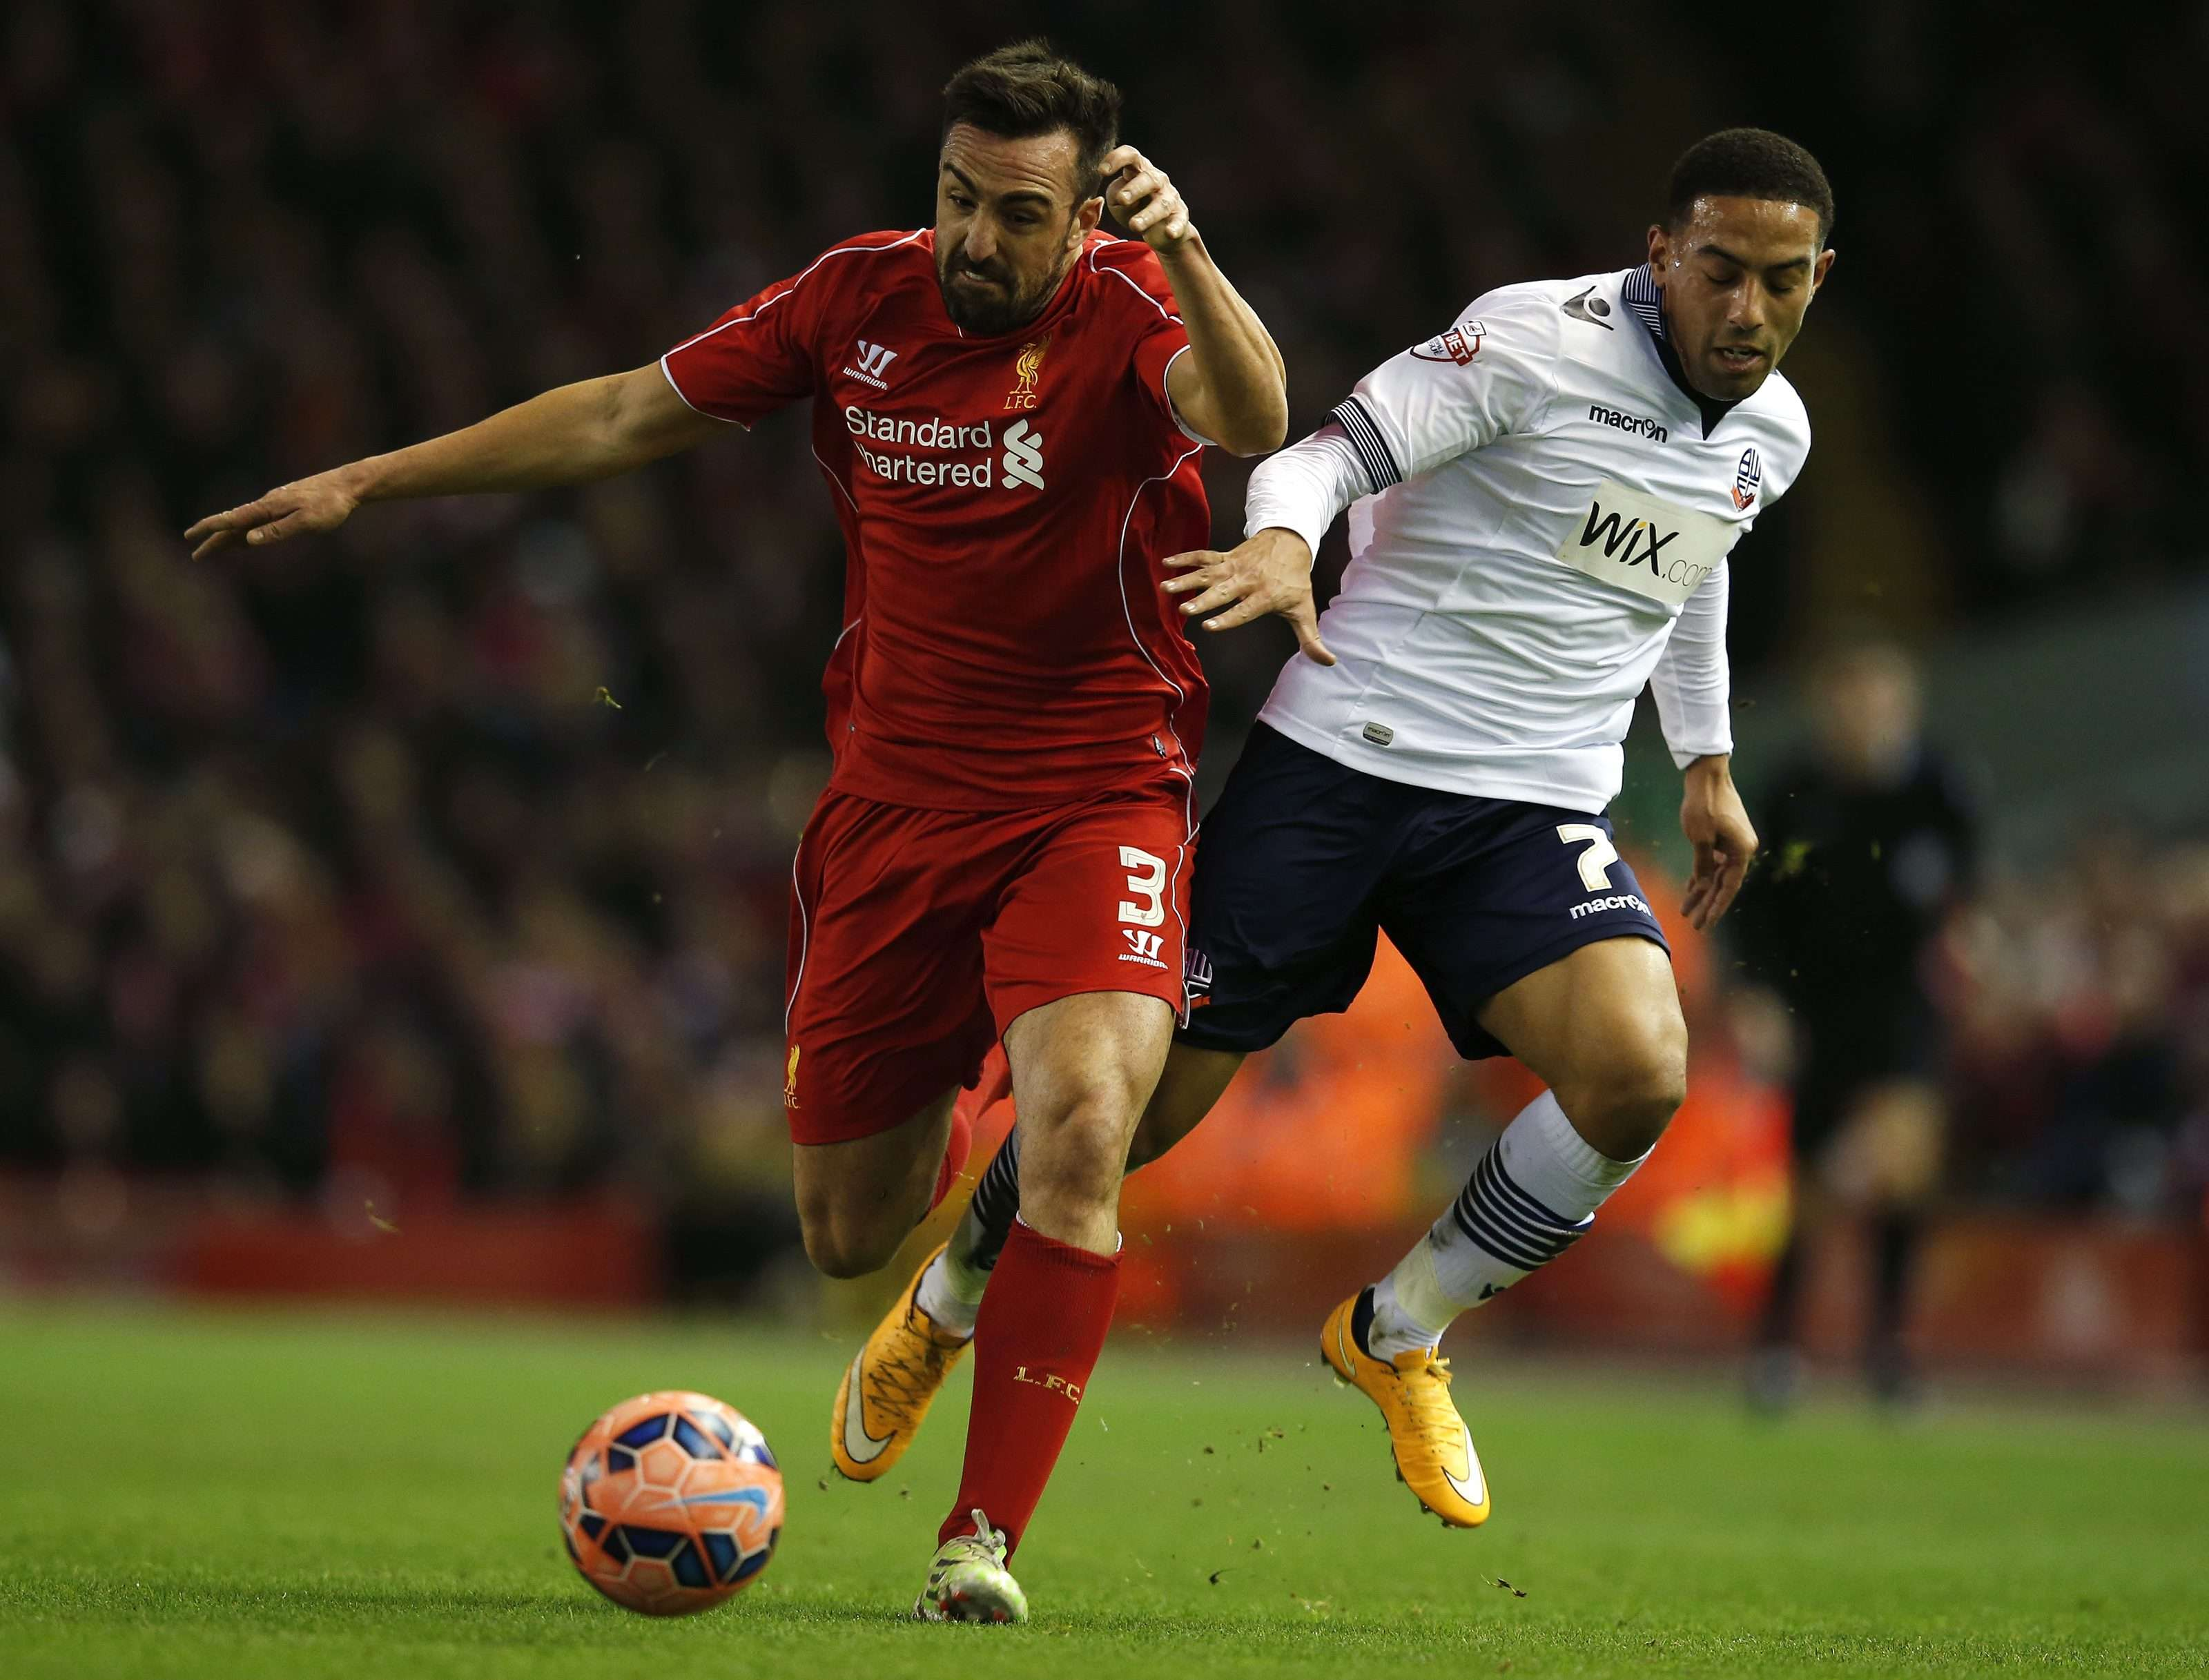 Liverpool's Jose Enrique (L) challenges Bolton Wanderers' Liam Feeney during their FA Cup fourth round soccer match at Anfield in Liverpool, northern England January 24, 2015. REUTERS/Phil Noble (BRITAIN - Tags: SPORT SOCCER) Foto: PHIL NOBLE/REUTERS